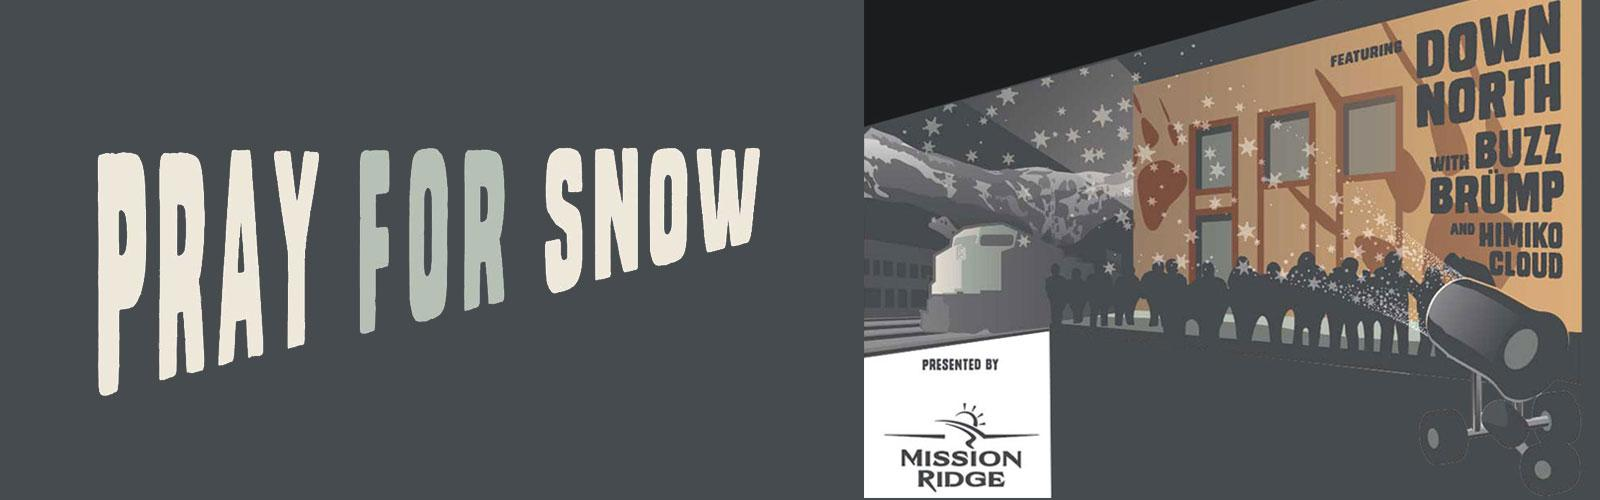 Pray For Snow Flyer with Band names